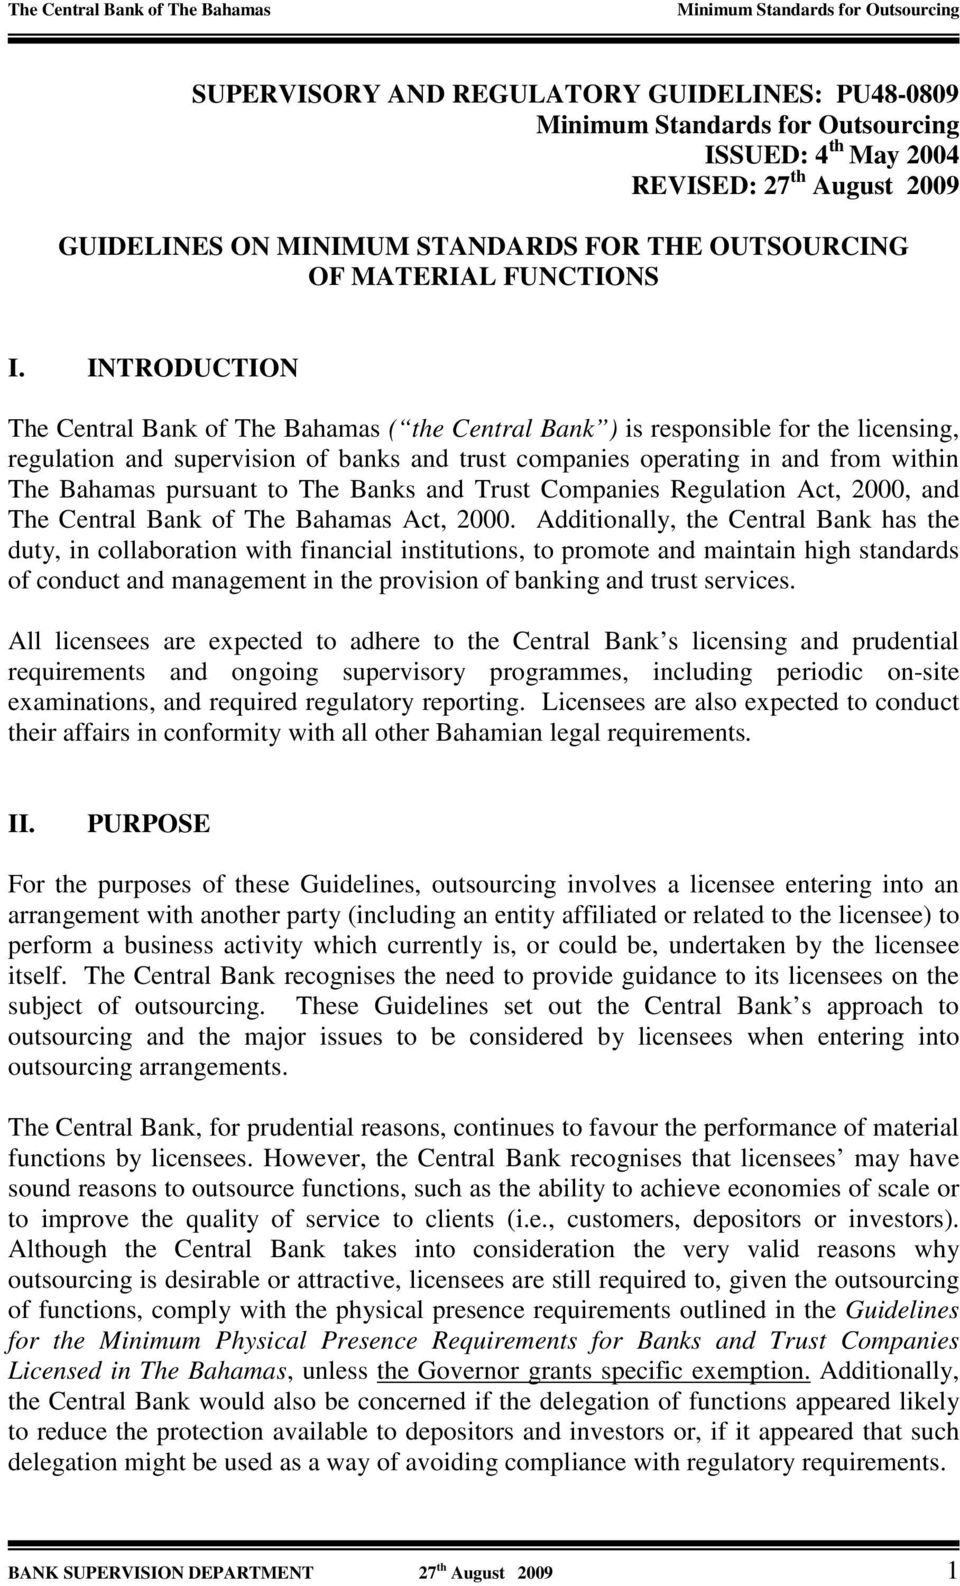 pursuant to The Banks and Trust Companies Regulation Act, 2000, and The Central Bank of The Bahamas Act, 2000.